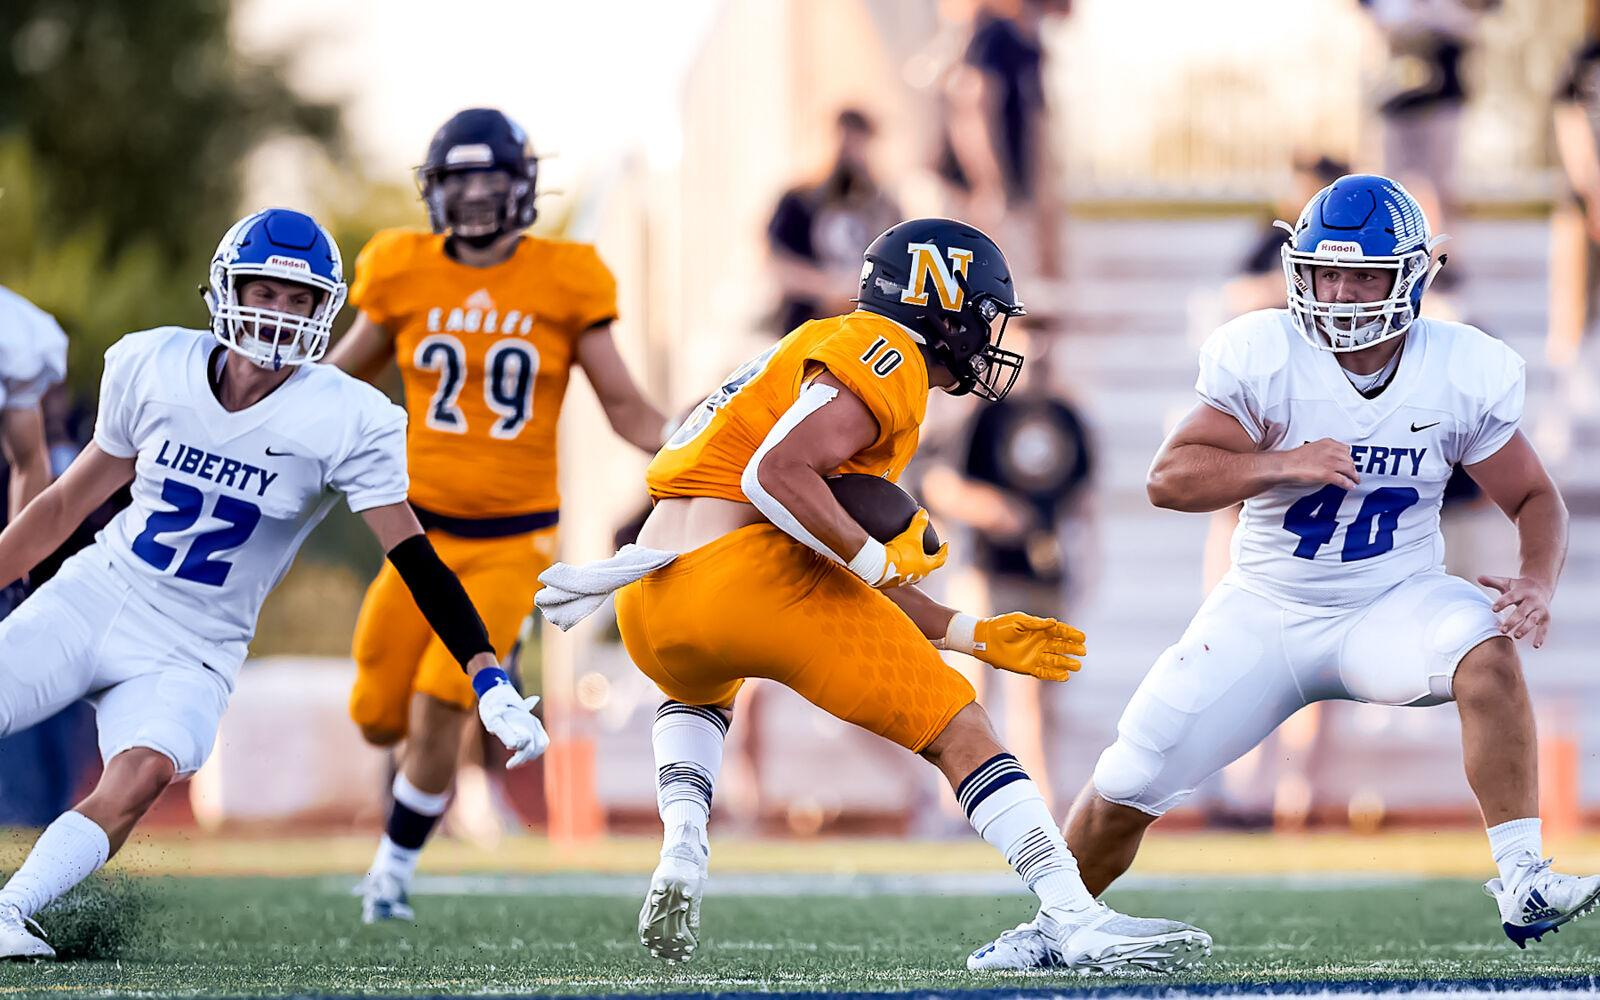 Liberty Liberty North football